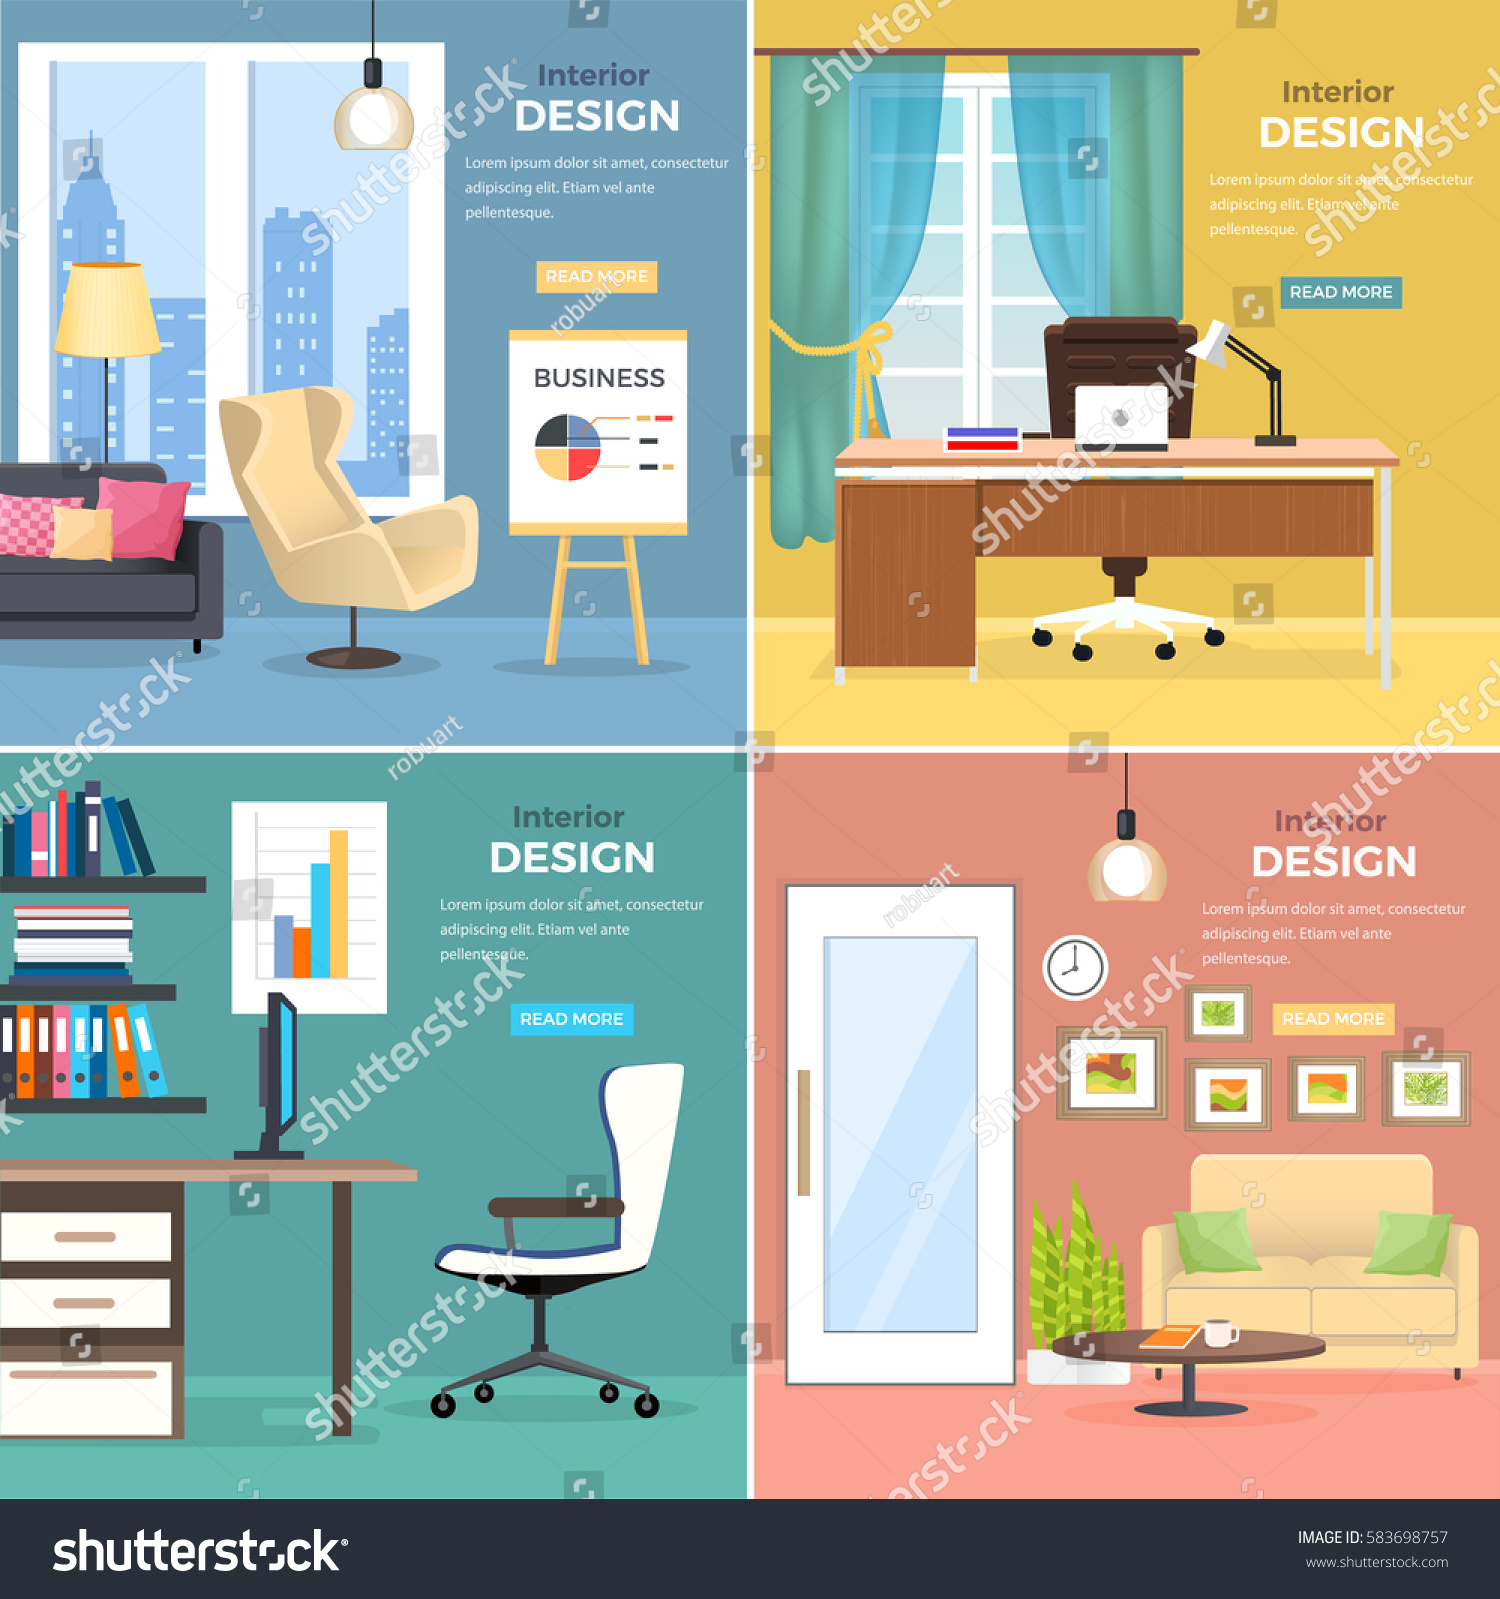 Interior Design Four Office Rooms Modern Stock Vector 583698757 .